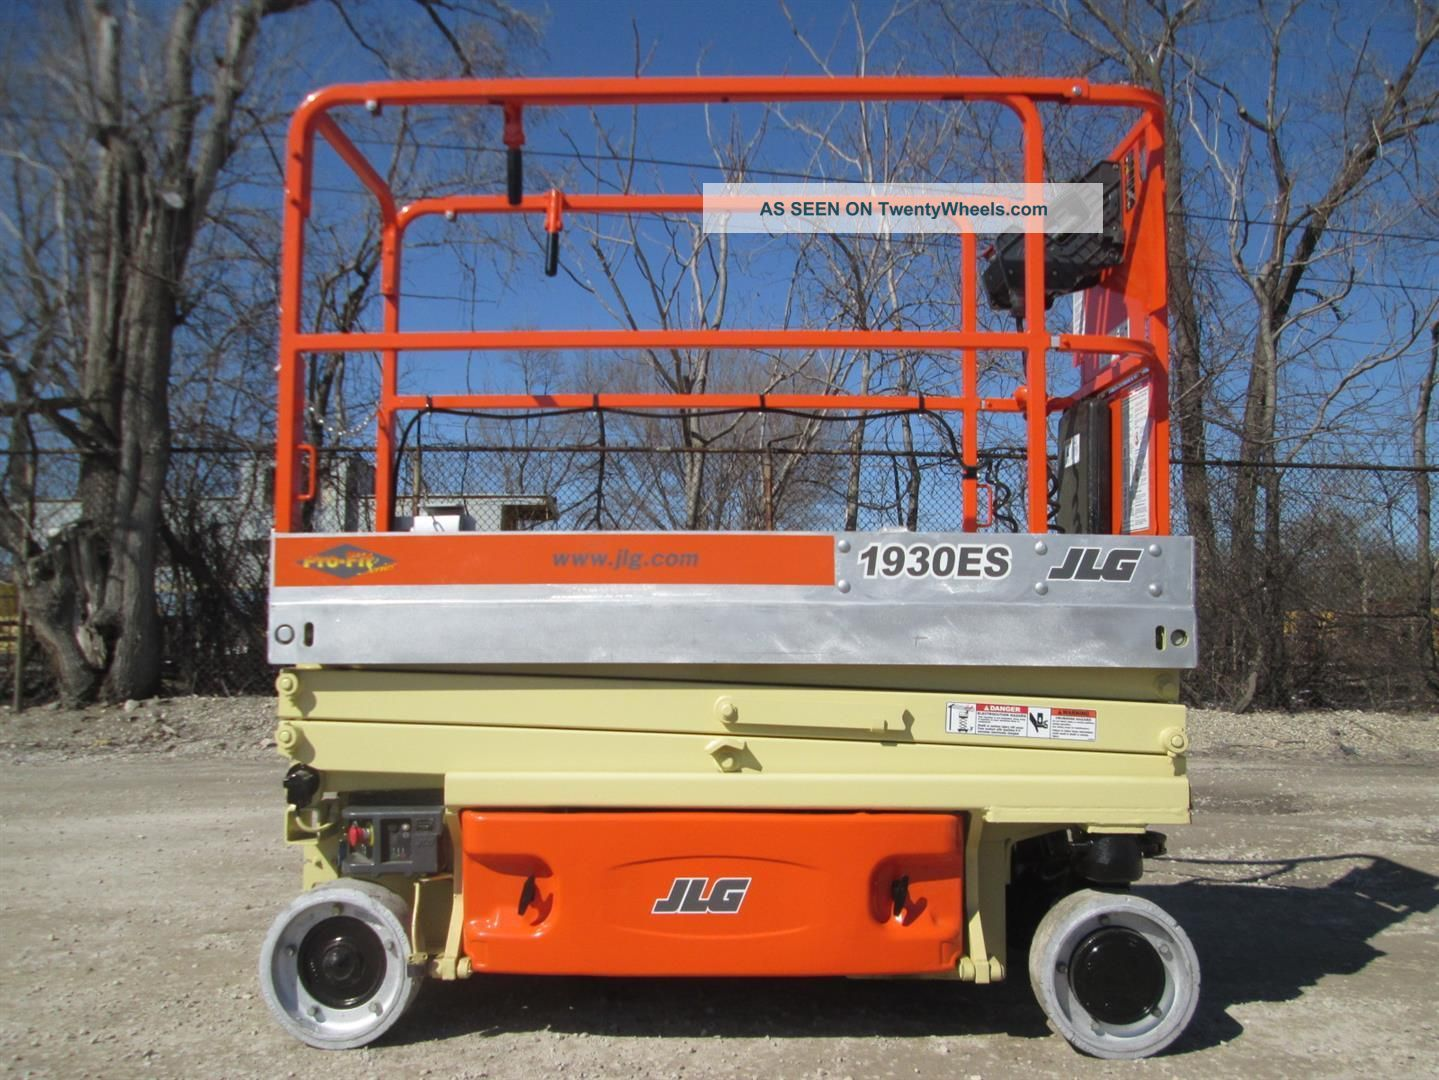 2007 Jlg 1930es Scissor Lift Manlift Boomlift Aerial Lift Platform Lift Jlg Scissor & Boom Lifts photo